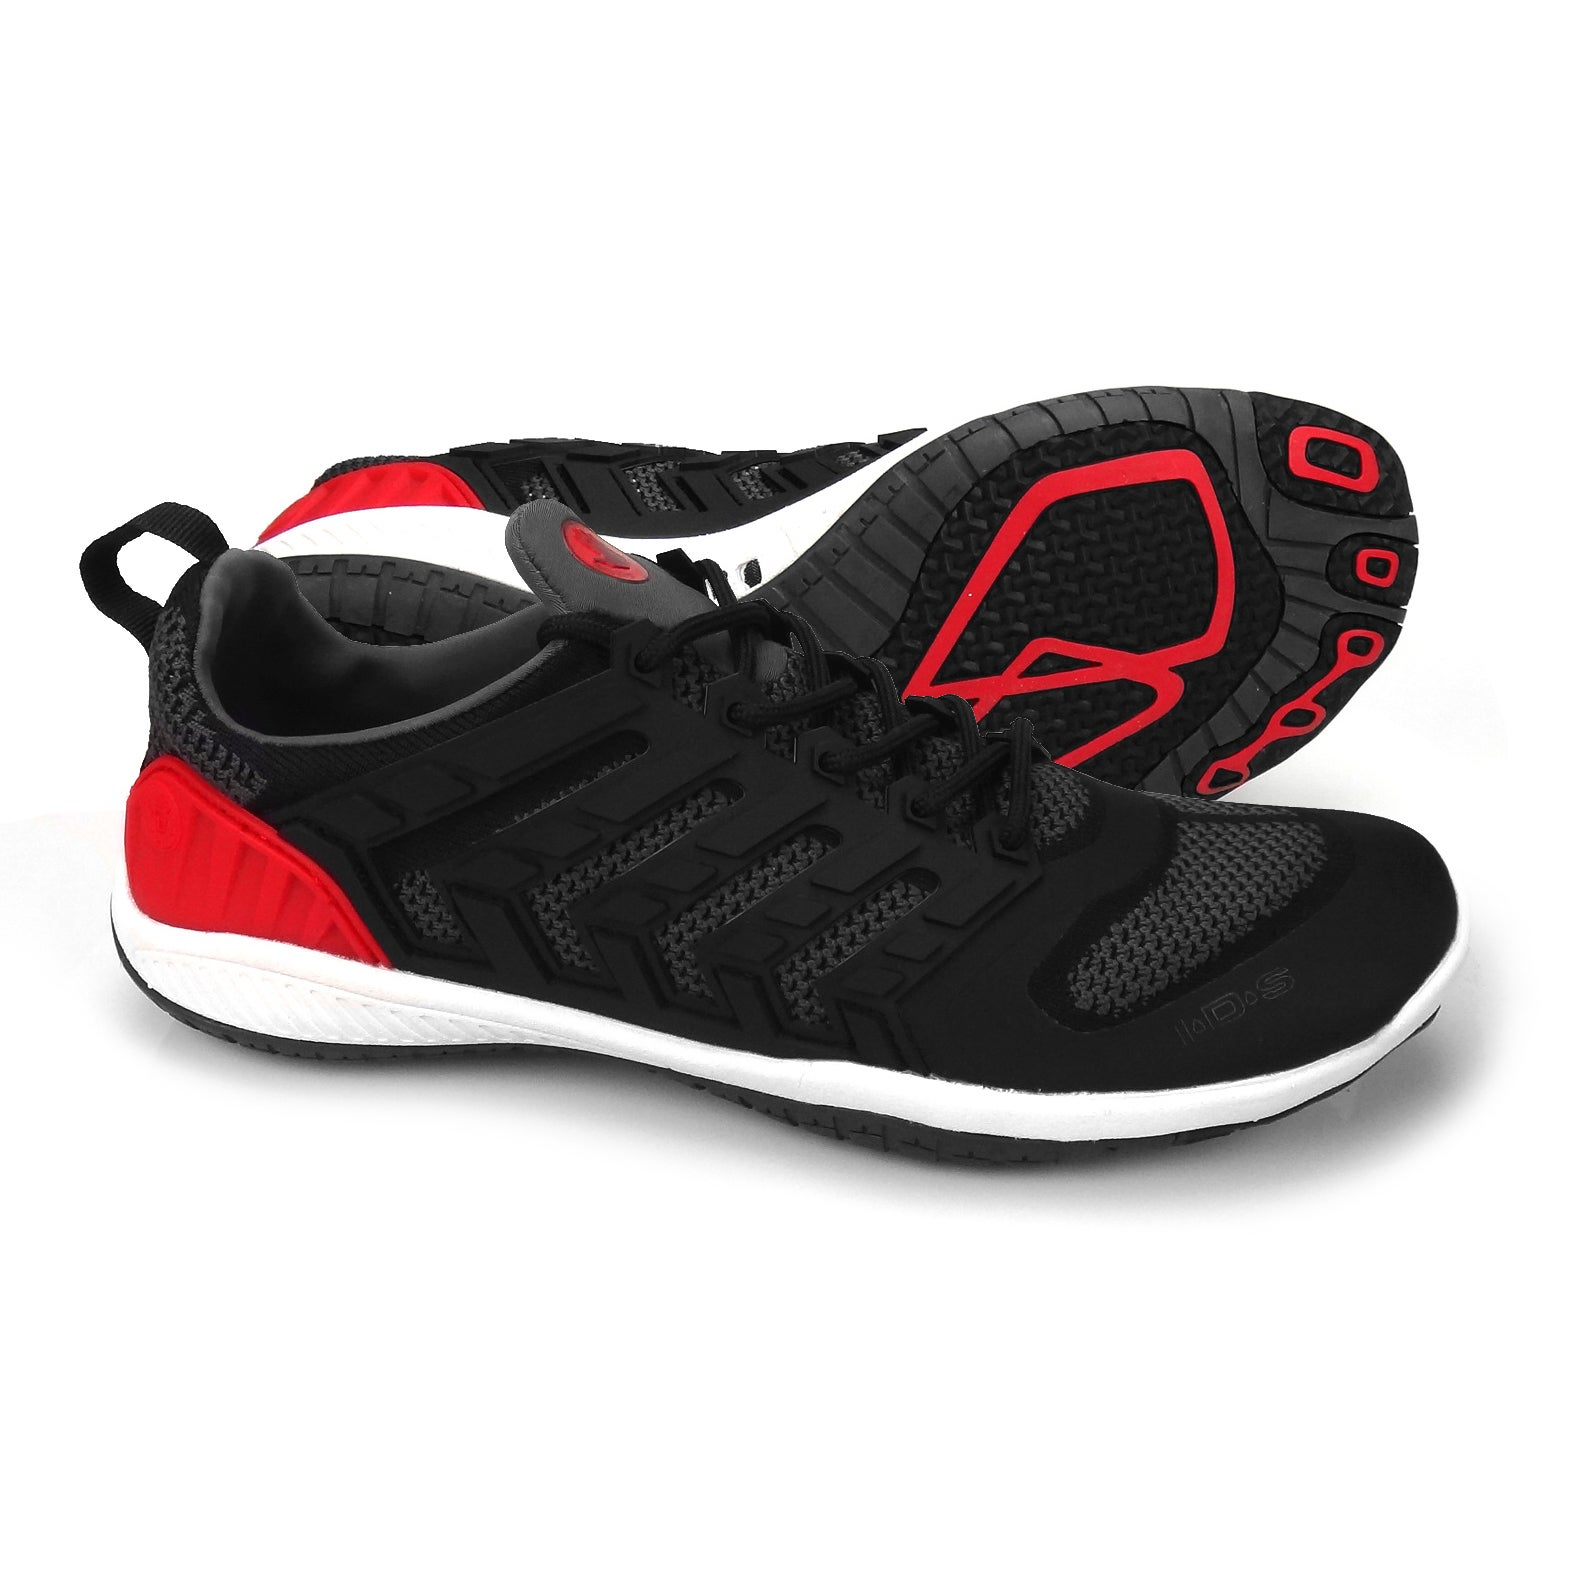 Body Glove Men's Dynamo Rib Cage Black/Tomato Hybrid Watersports Athletic  Shoes - Overstock - 14708076